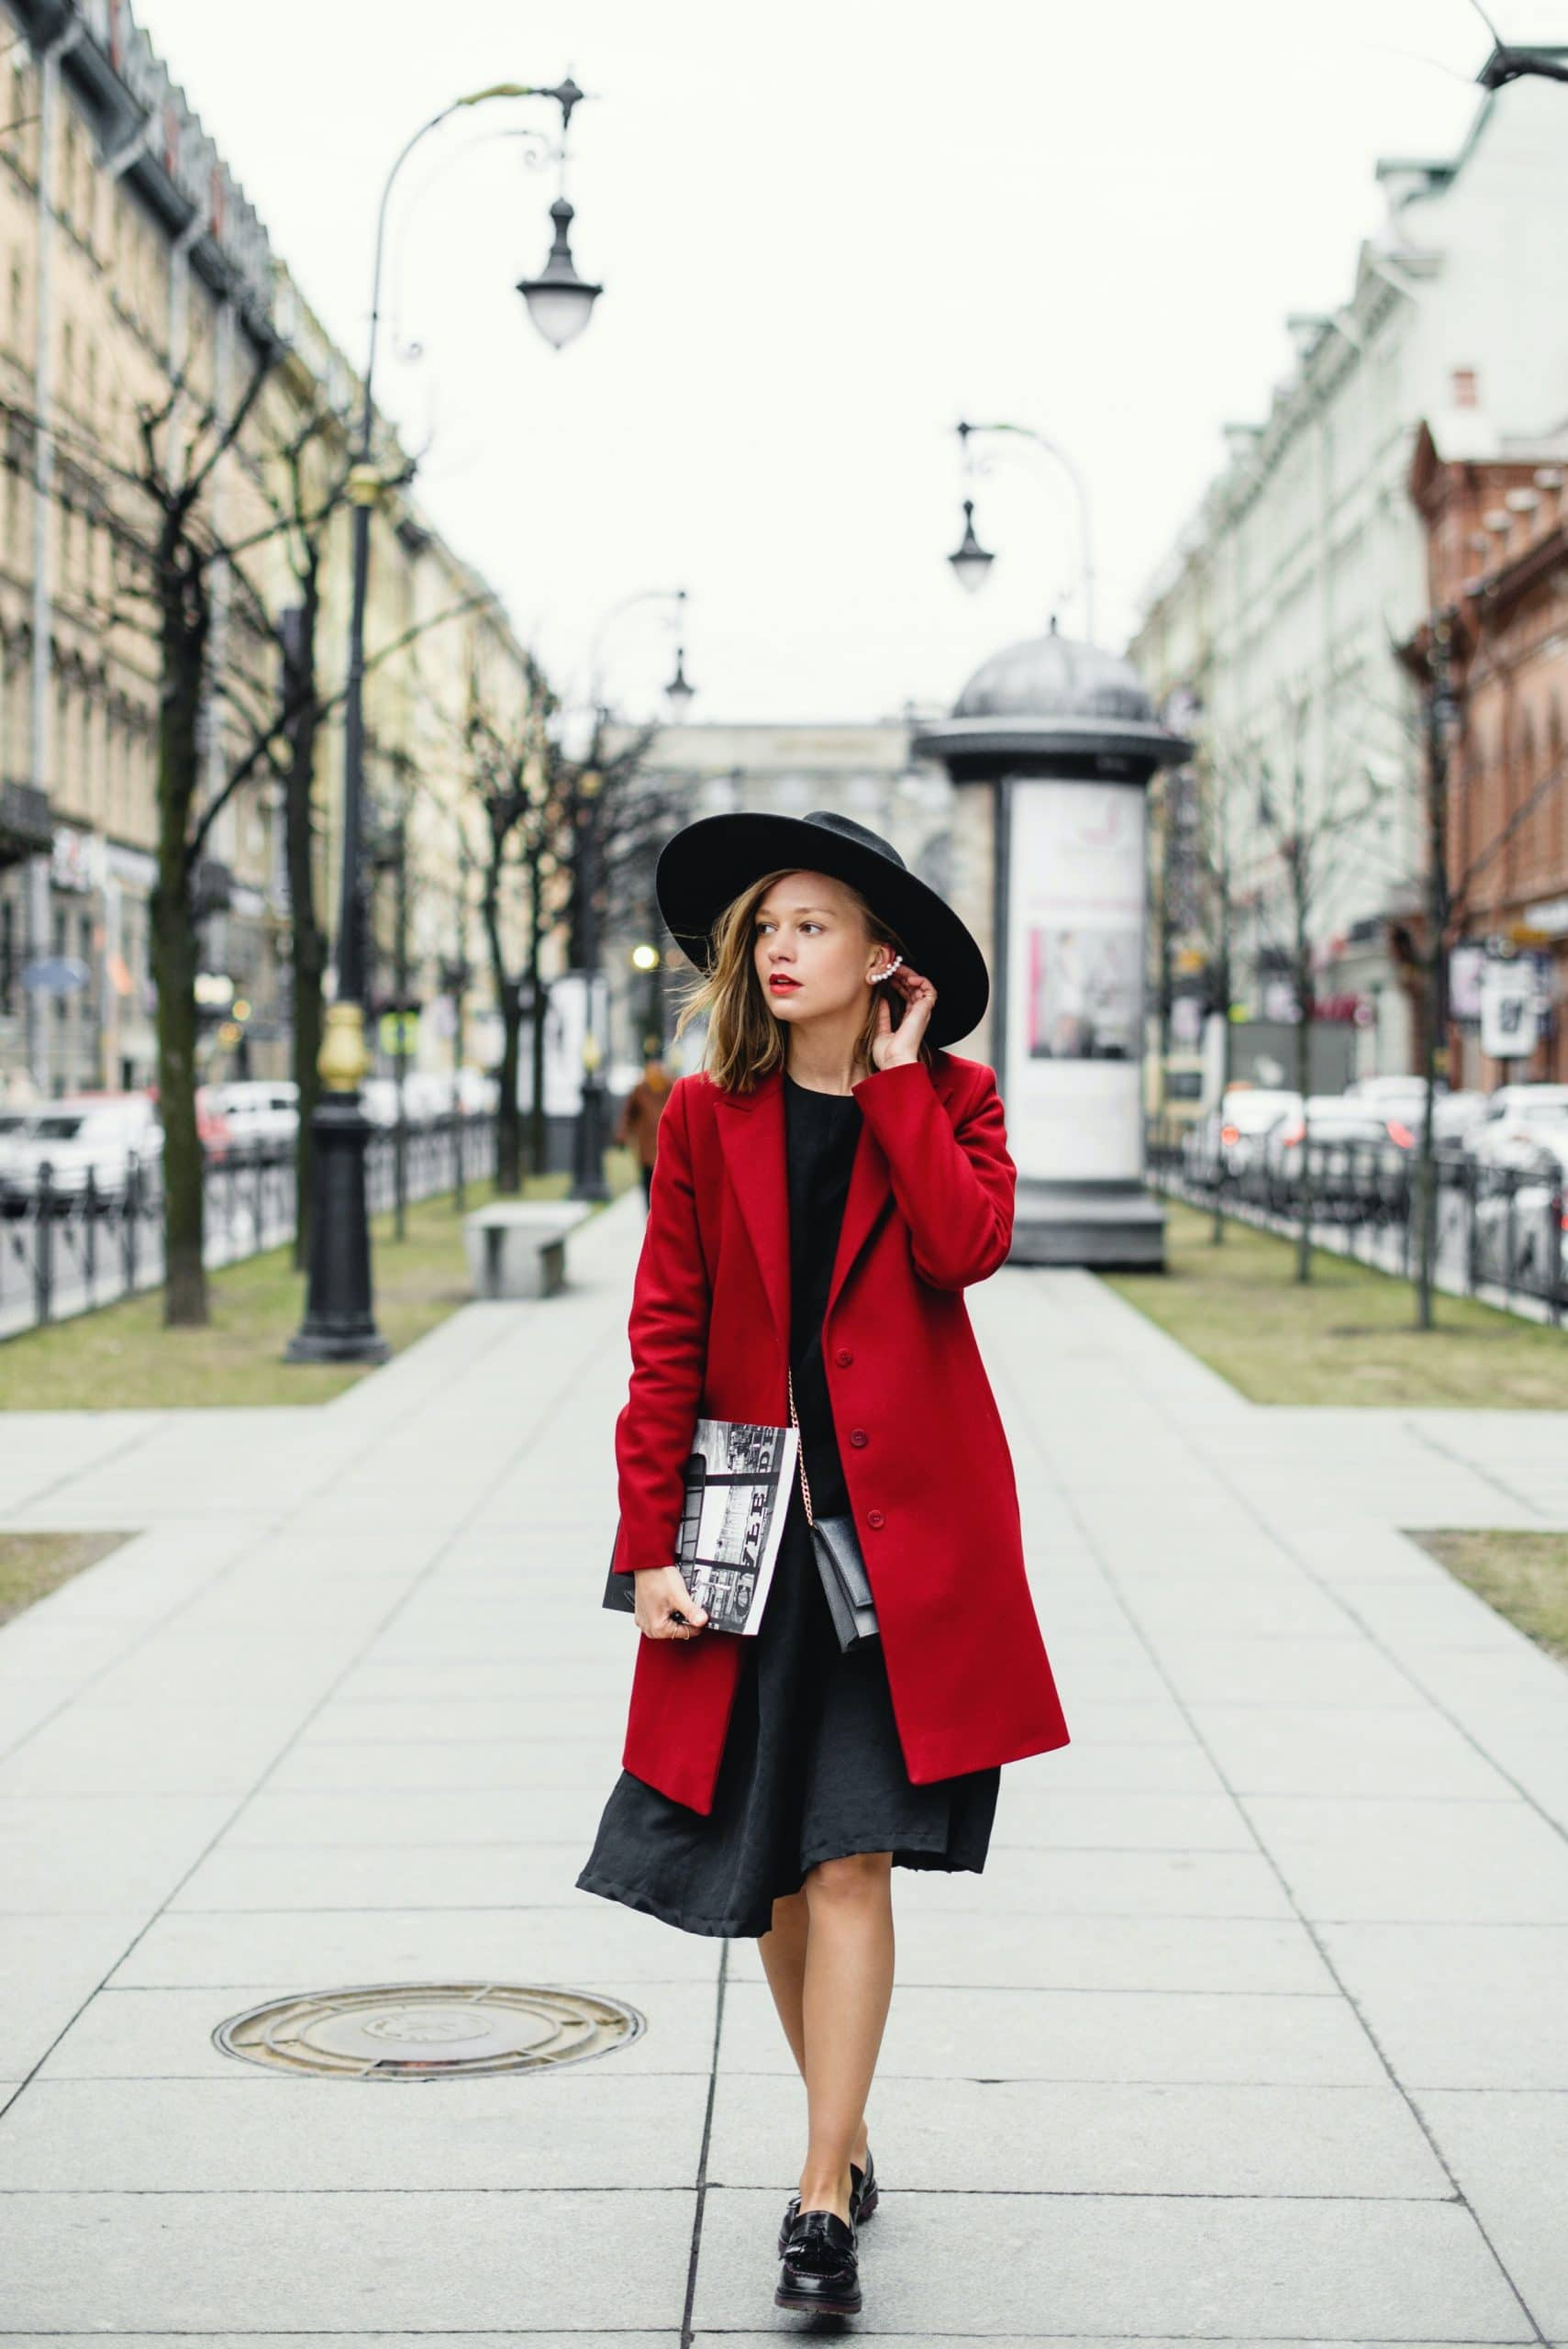 woman-in-red-coat-and-black-skirt-walking-on-sidewalk-3951783